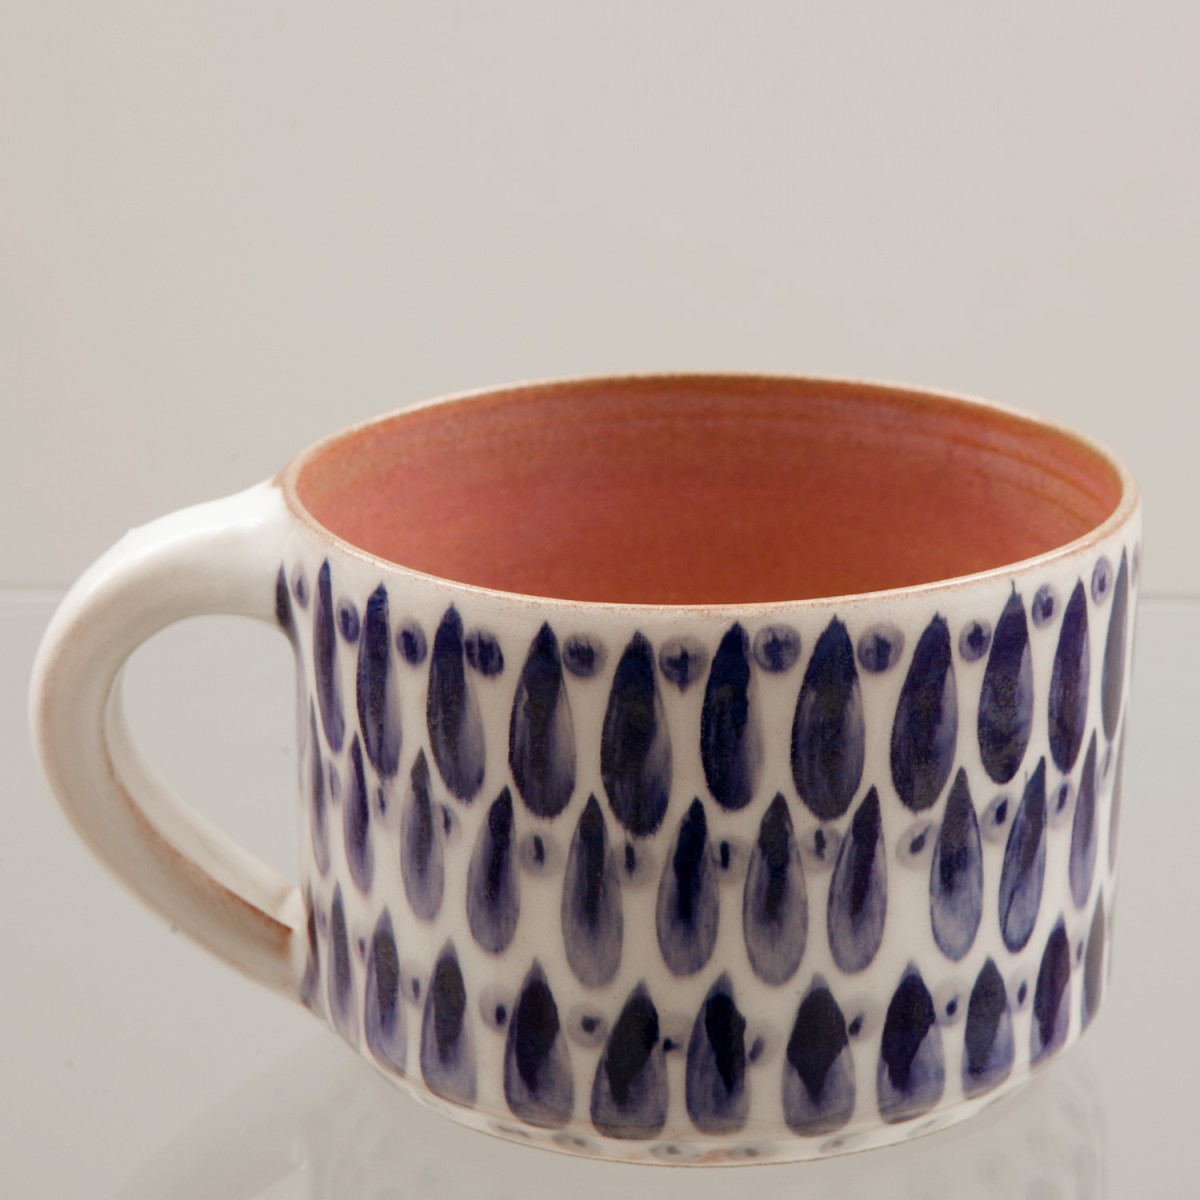 Handmade Ceramic Mugs - Drops - A